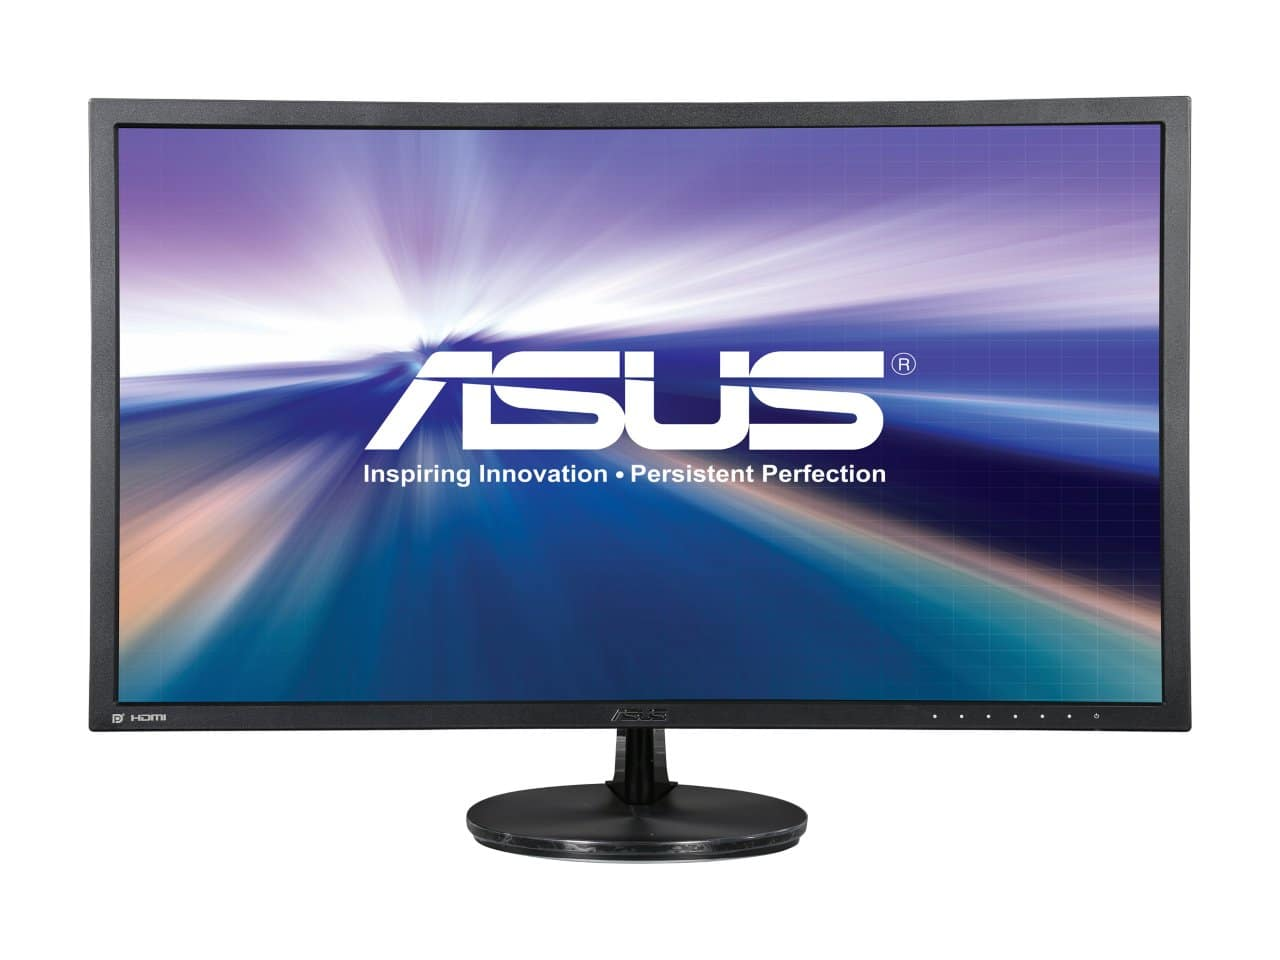 "28"" Asus VN289QR 1920x1080 5ms VA Panel HDMI LED Monitor for $159.99 AR, 25"" LG 25UM56-P 2560x1080 5ms IPS Panel Dual HDMI LED Monitor for $159.99 + S&H & More @ Newegg.com"